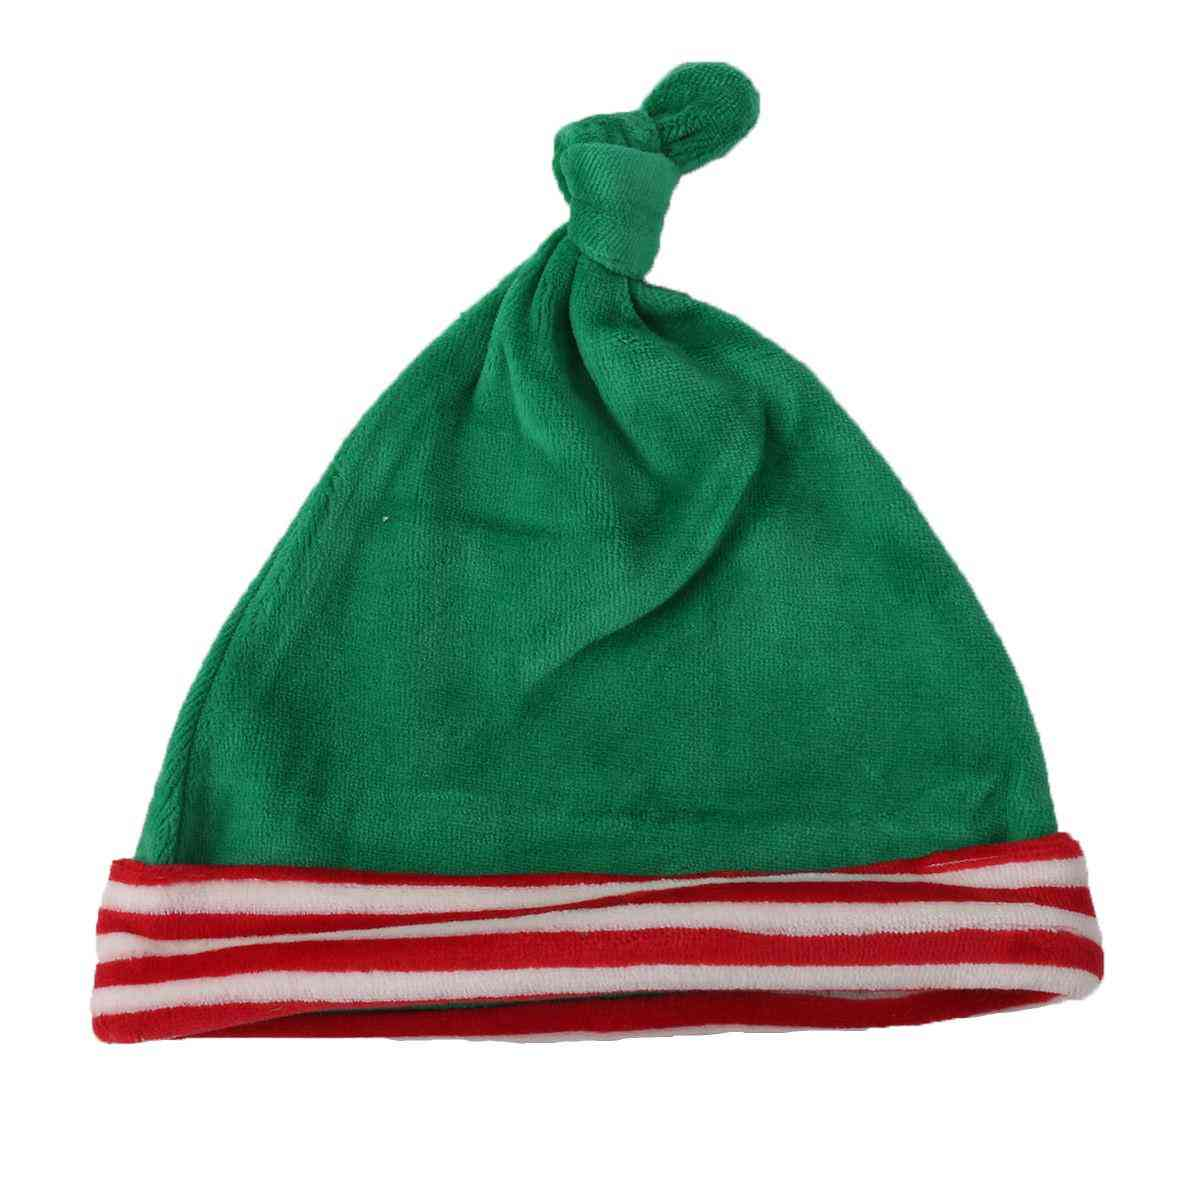 Asaan Bachpan Baby Cap for 0 - 6 Month Baby  Green